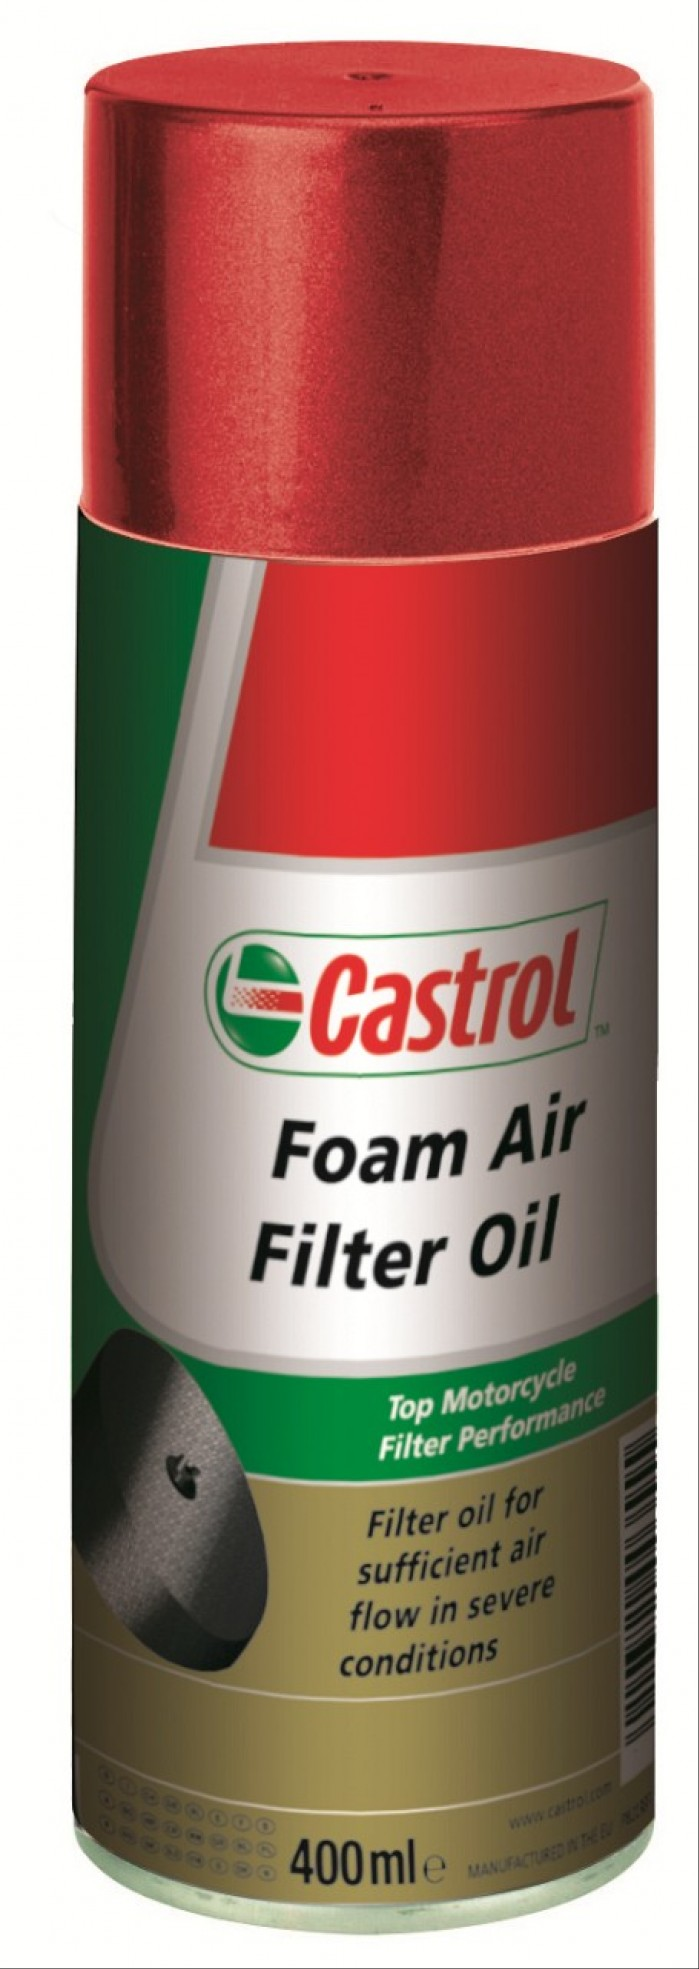 Foam air filter oil P820387 03